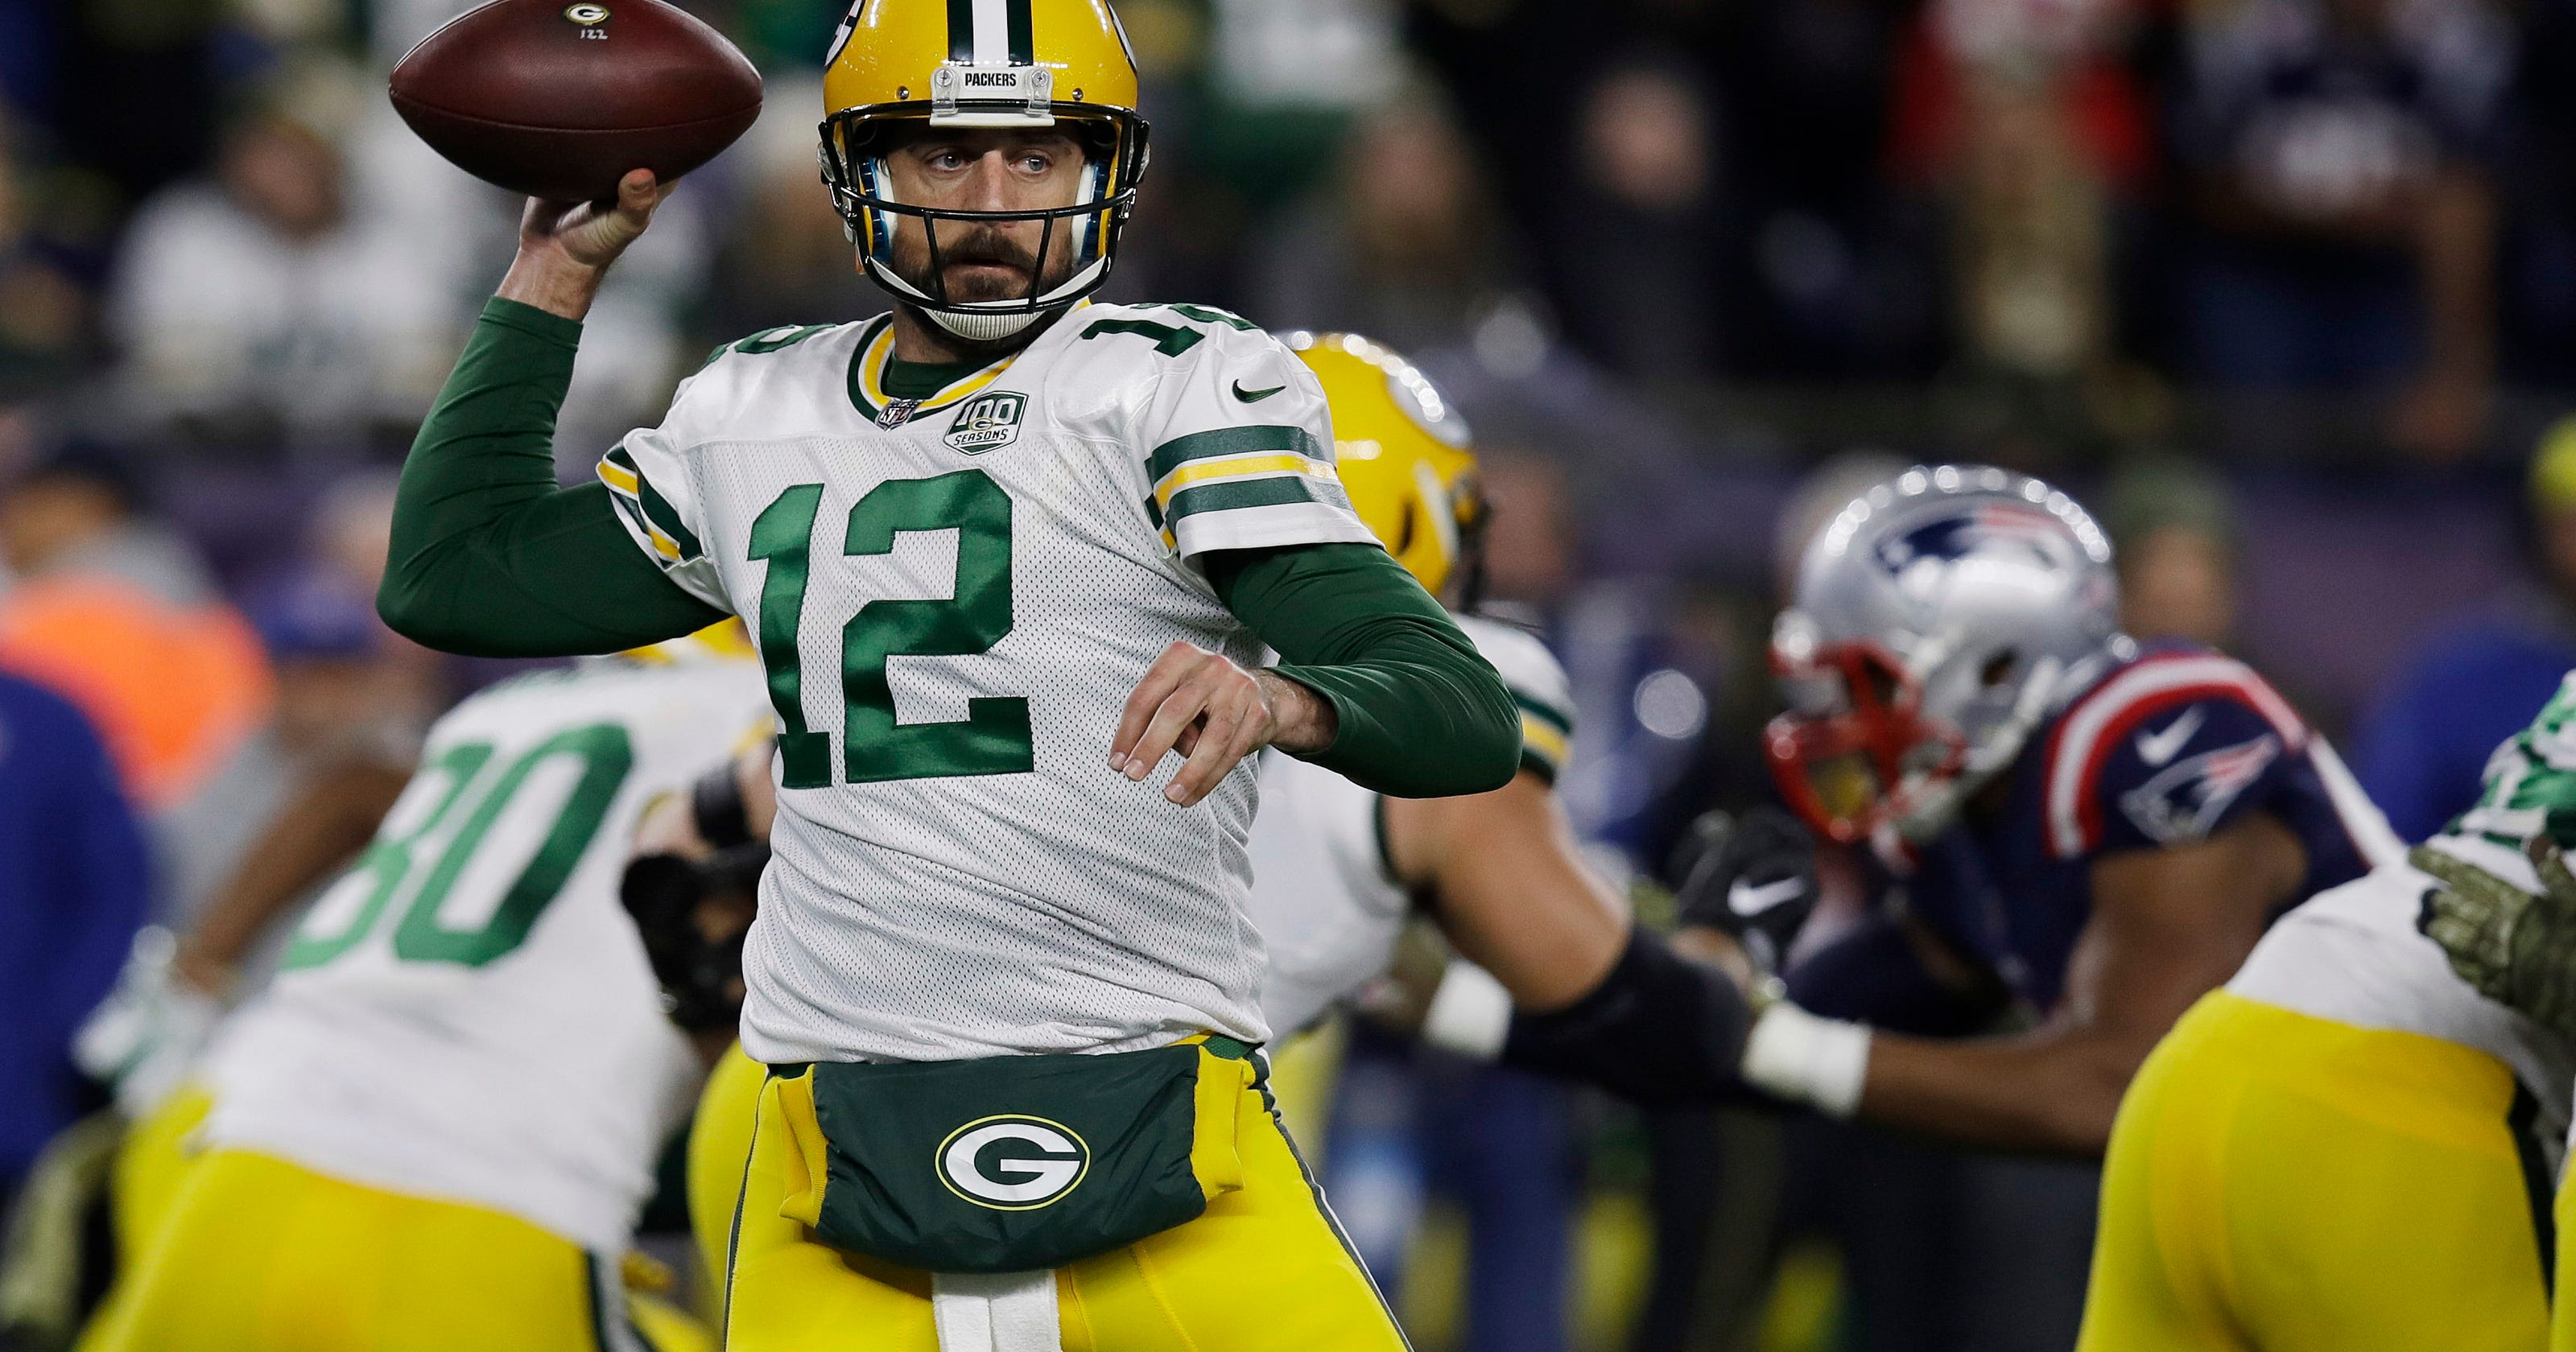 a5a6286f617 Column: Brady already was the GOAT before beating Rodgers